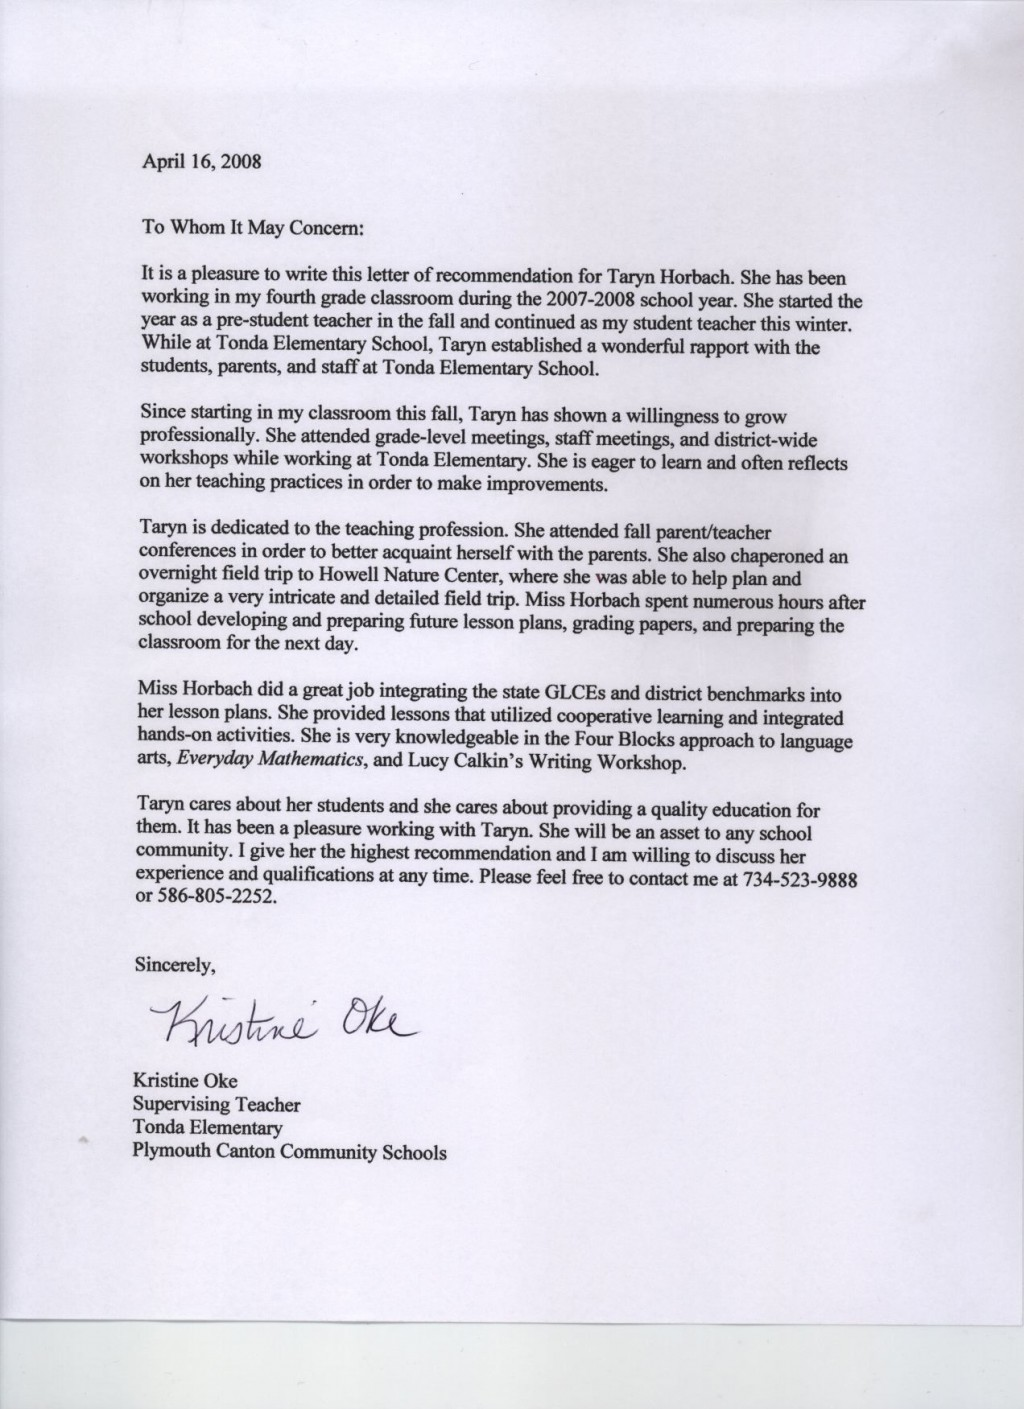 002 Sensational Letter Of Recommendation For Student Teacher From Cooperating Template Highest Quality Large